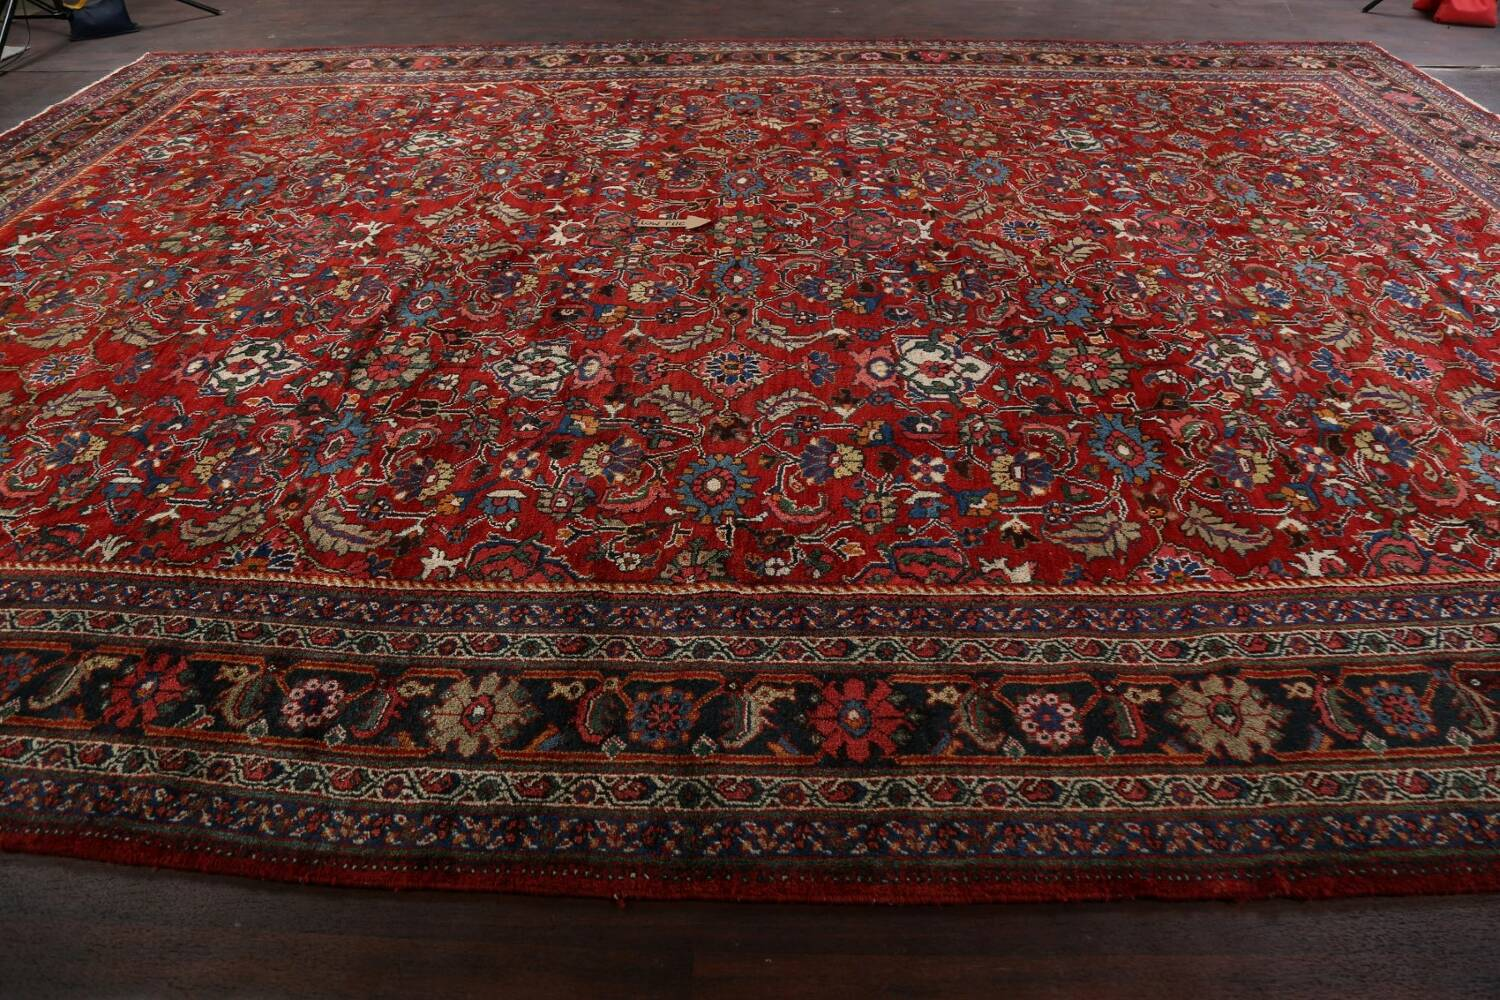 Antique 100% Vegetable Dye Sultanabad Persian Area Rug 12x17 image 14